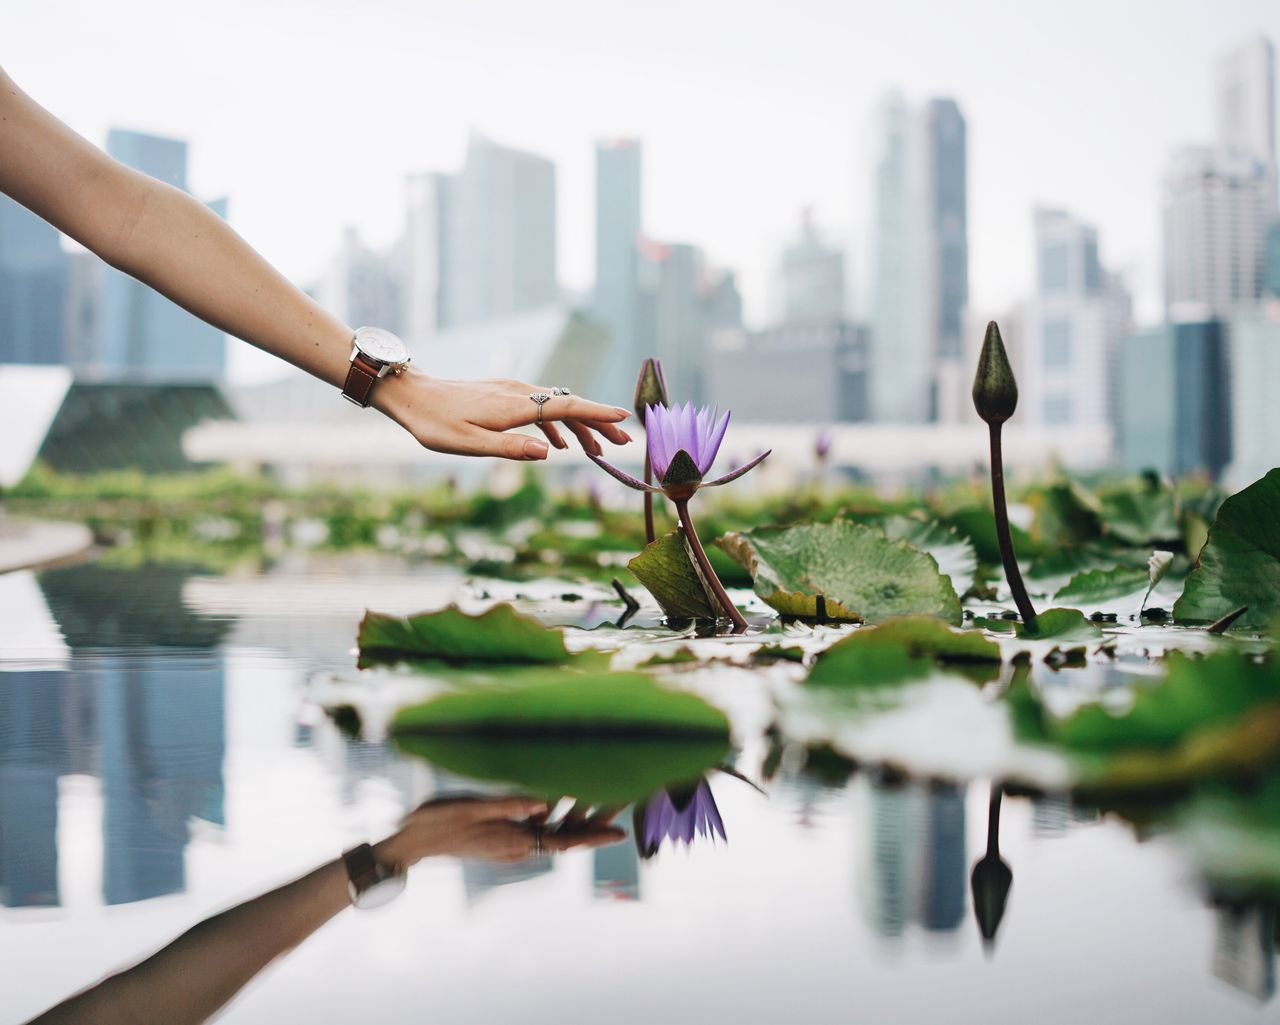 urban greens Flower Water Water Lily City Skyscraper Nature Freshness Hand Hand Of A Girl Skyline Singapore Urban Nature Reflection Reaching Out Plant Growth Lake Beauty In Nature Focus On Foreground Bright Cloudy Day Connected With Nature Touch Wristwatch TakeoverContrast